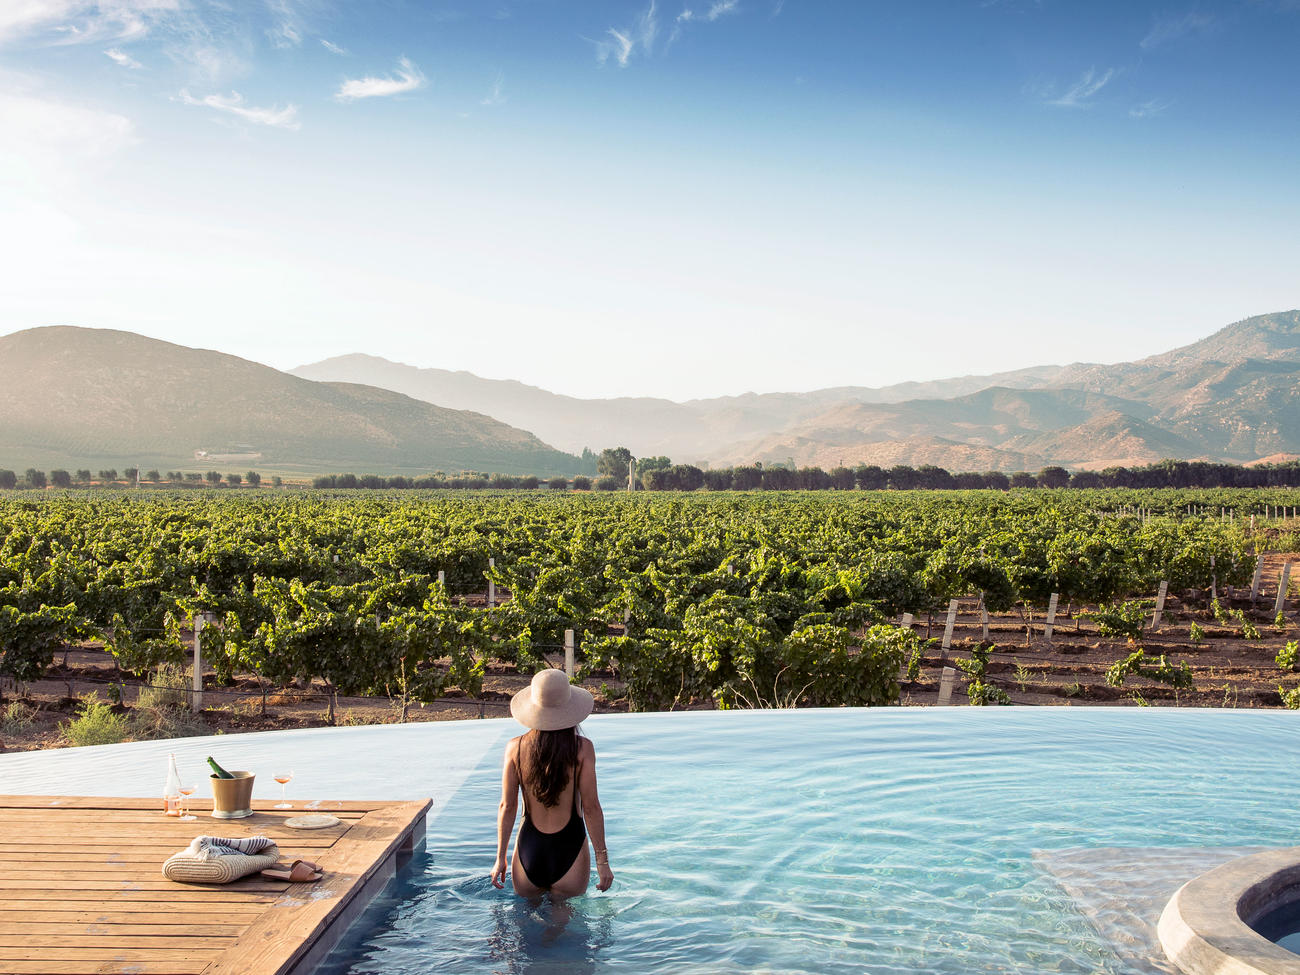 A Wine Tasting Trip through Valle de Guadalupe, Baja California